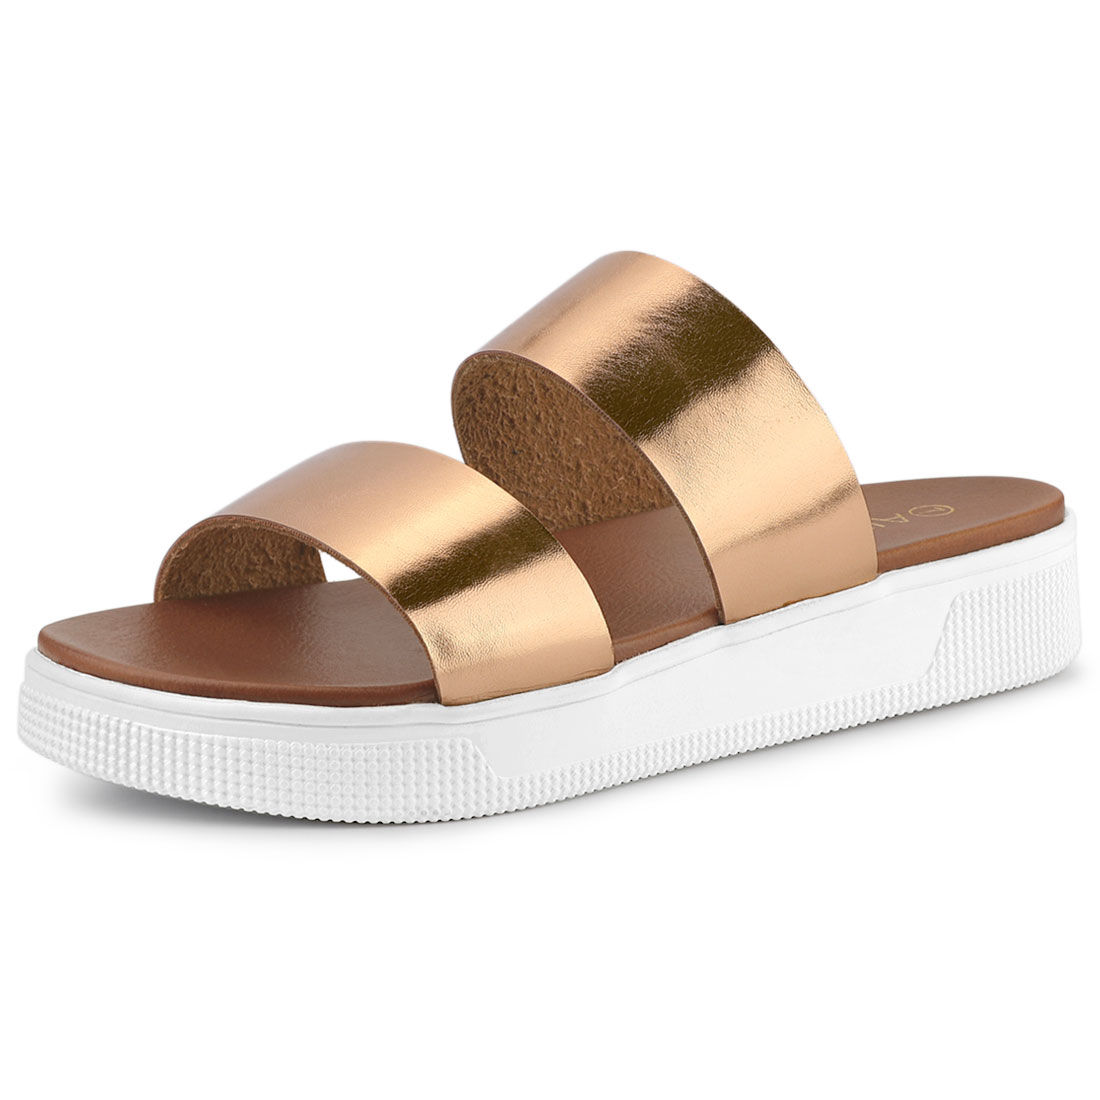 Allegra K Women's Open Toe Flatform Slides Sandals Rose Gold US 9